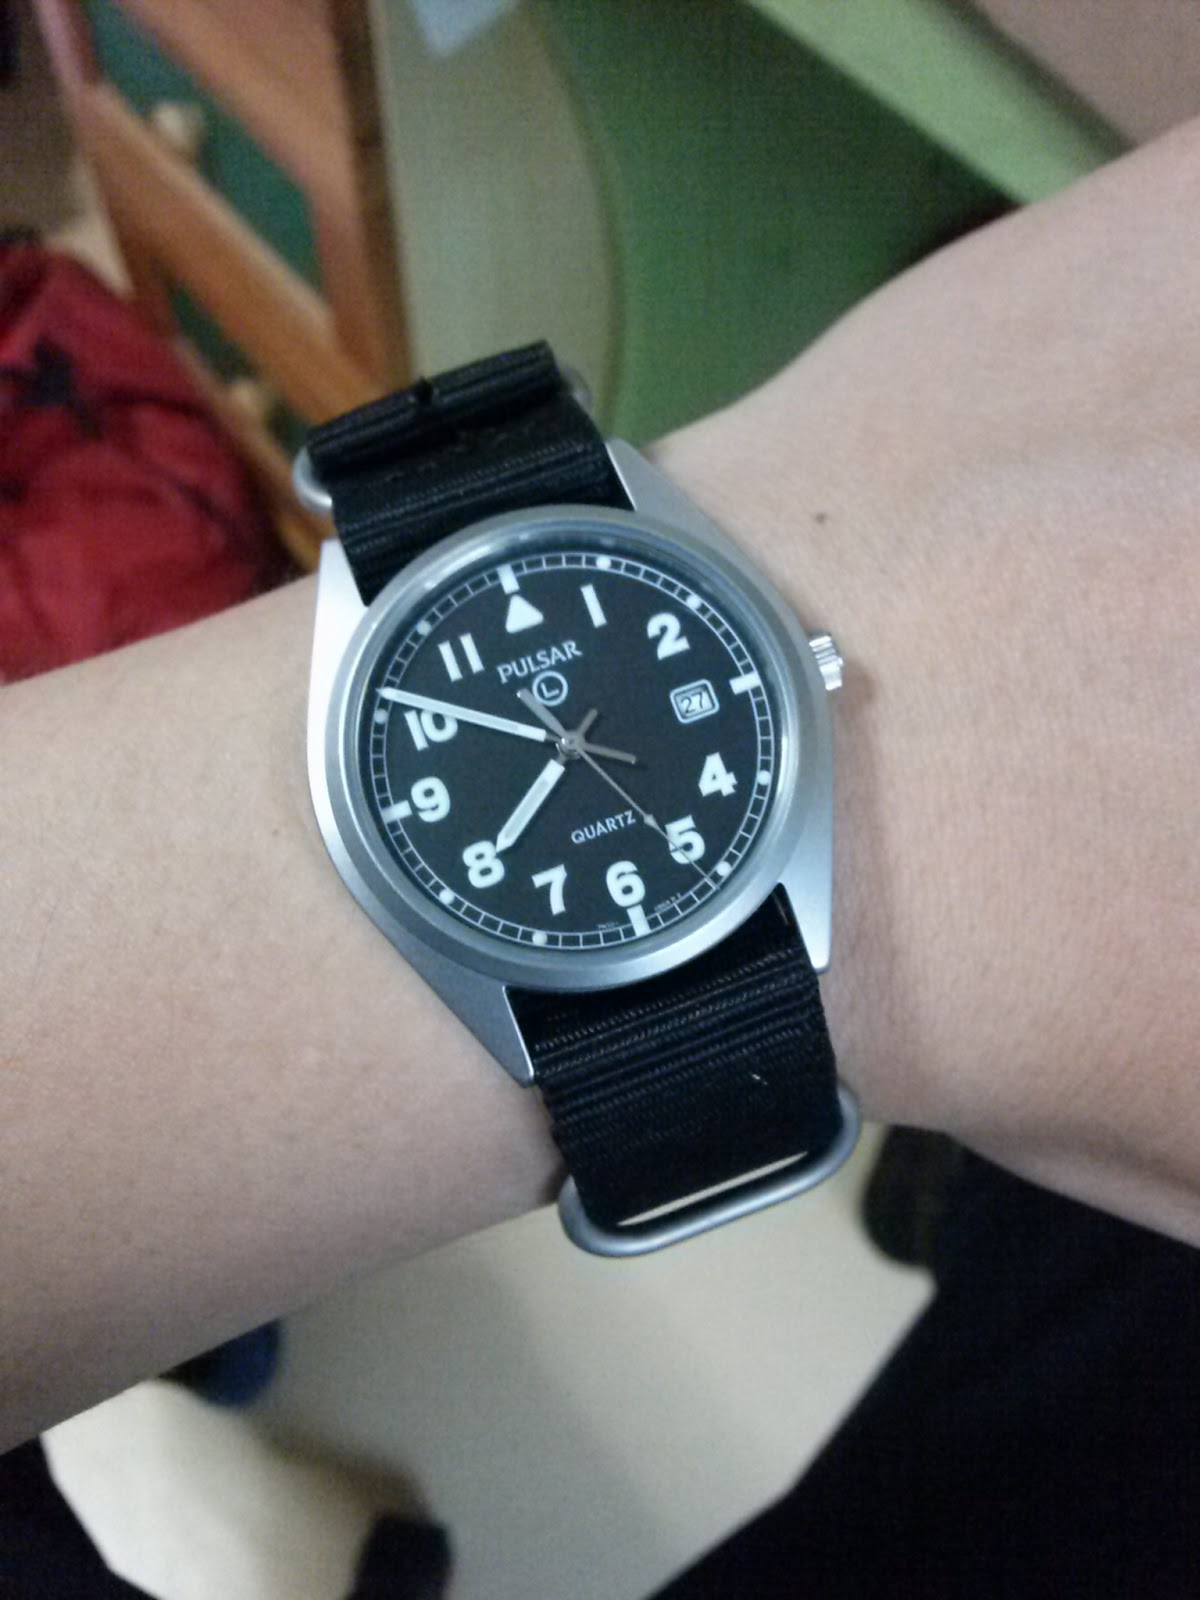 Nonexpensive Military Field Watch Review: British Royal